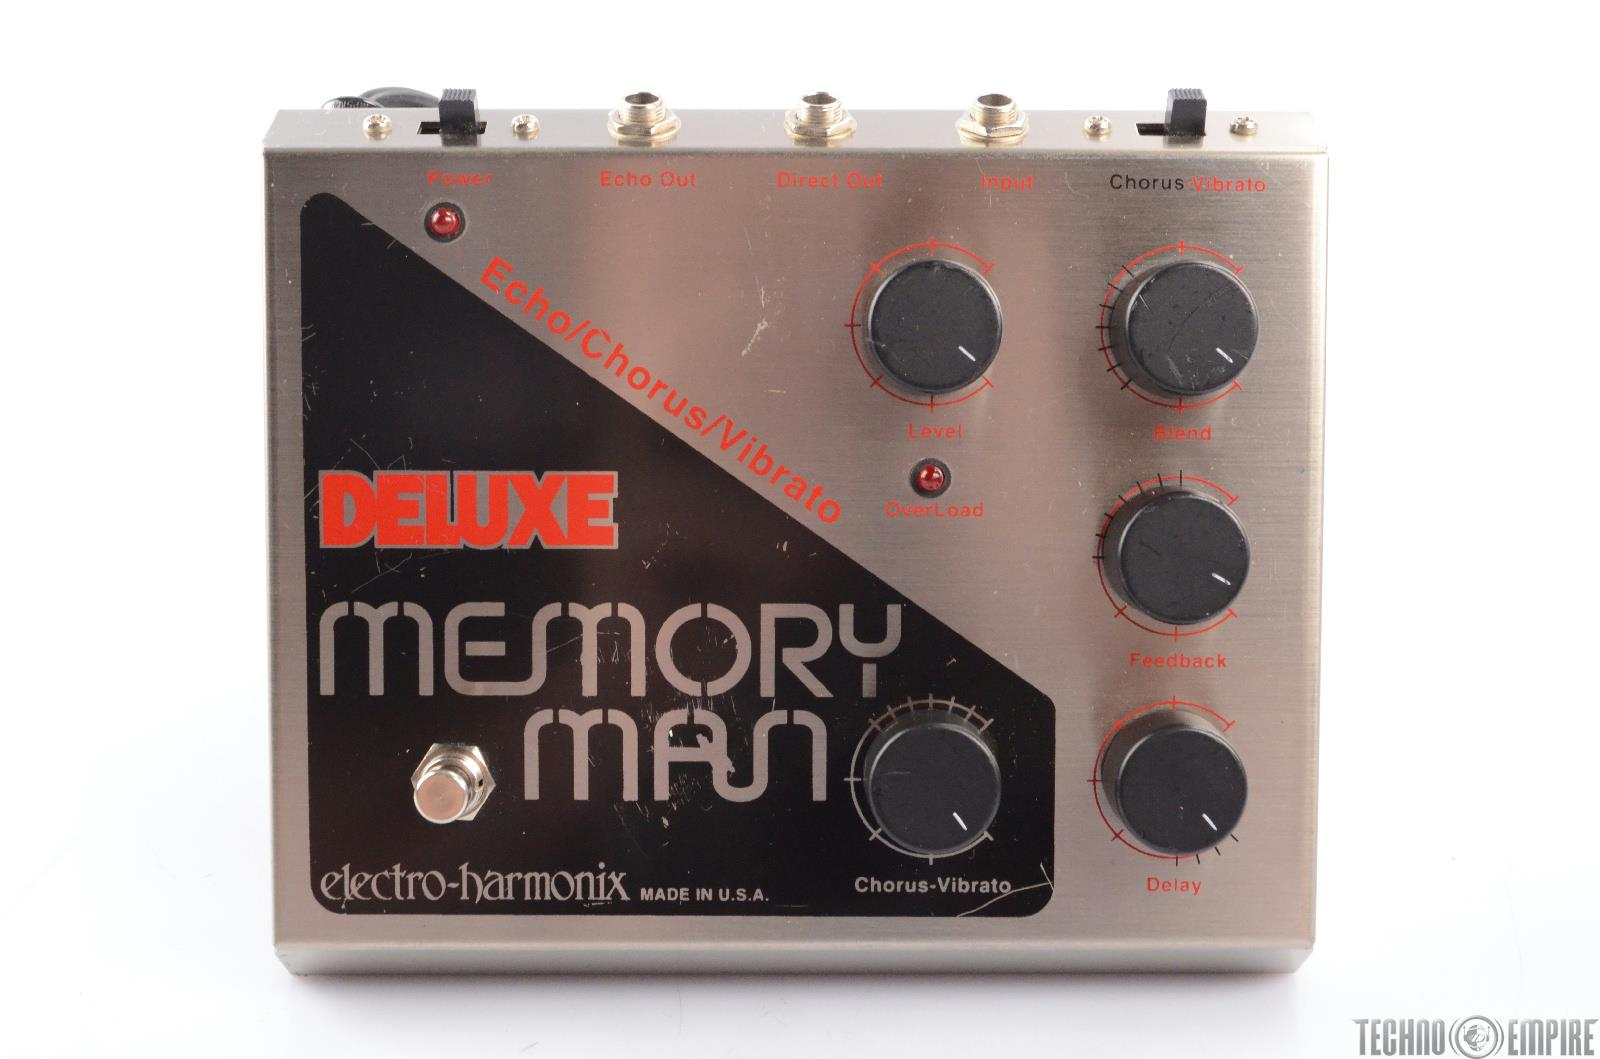 ehx deluxe memory man analog delay chorus vibrato pedal paul gilbert 23312 ebay. Black Bedroom Furniture Sets. Home Design Ideas